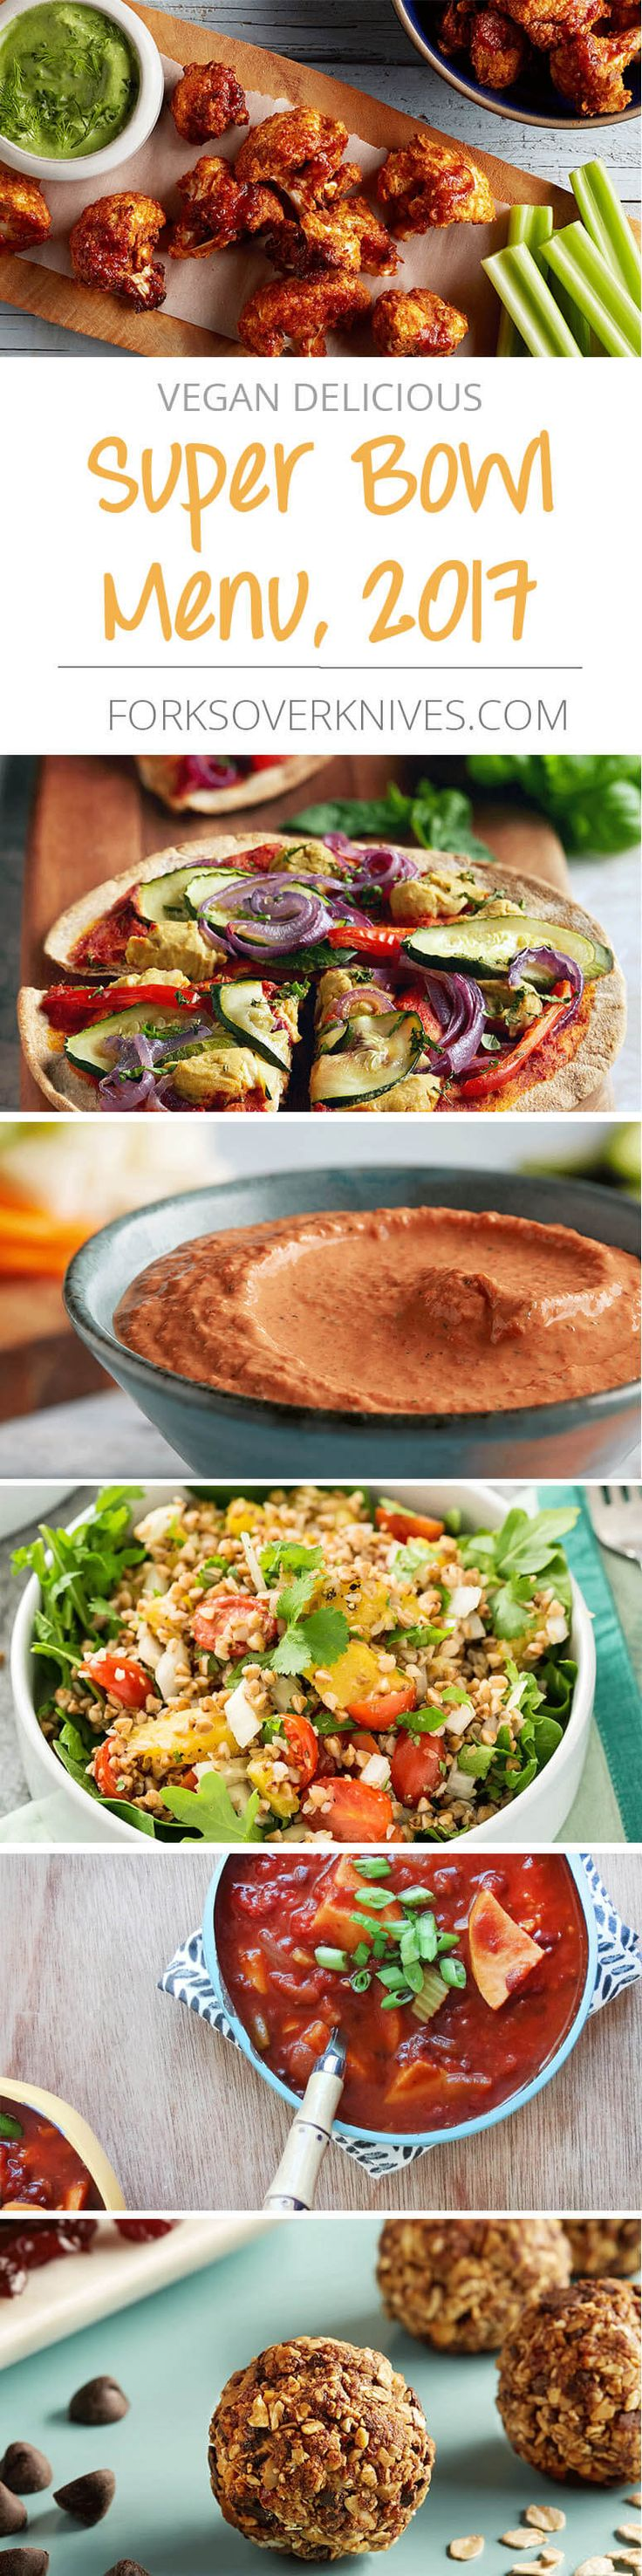 Trying to figure out what to make for Super Bowl Sunday? We've got you covered. All the recipes below are tailgate-ready for your Super Bowl party or casual gathering. This winning menu is simple, delicious, and healthy! Find all the...  Read more